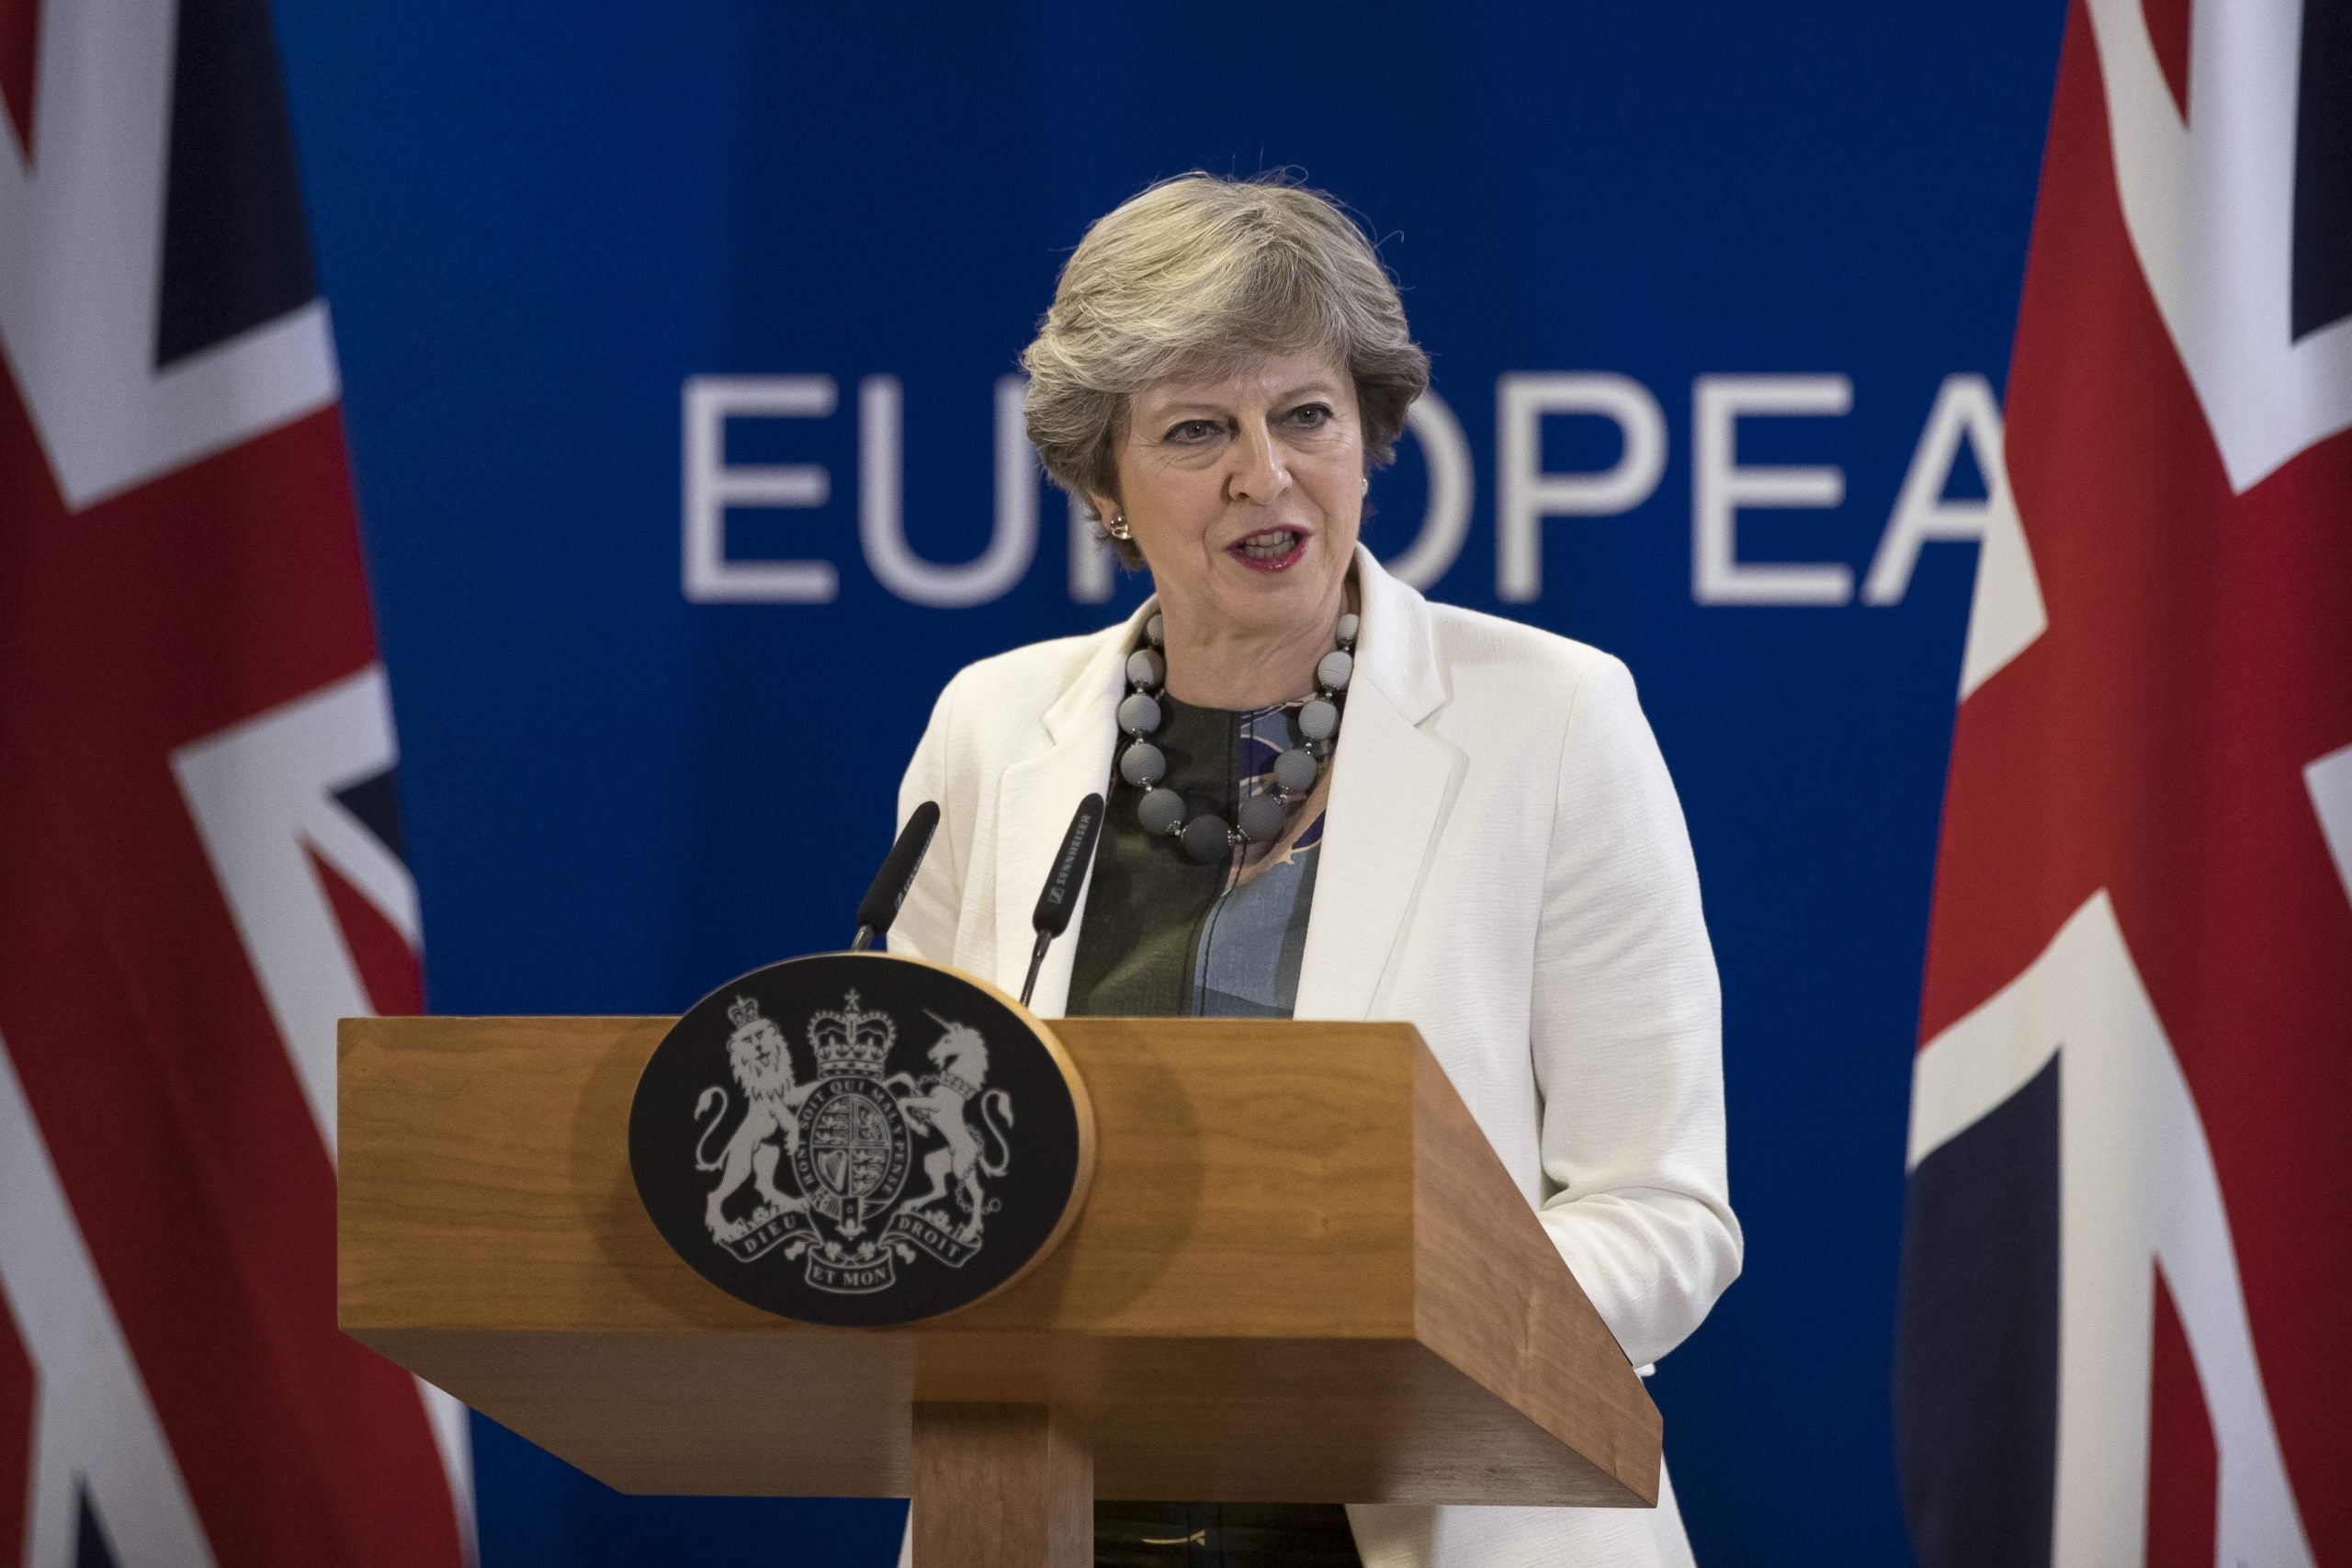 Will Brexit spell the end of the Conservative party?